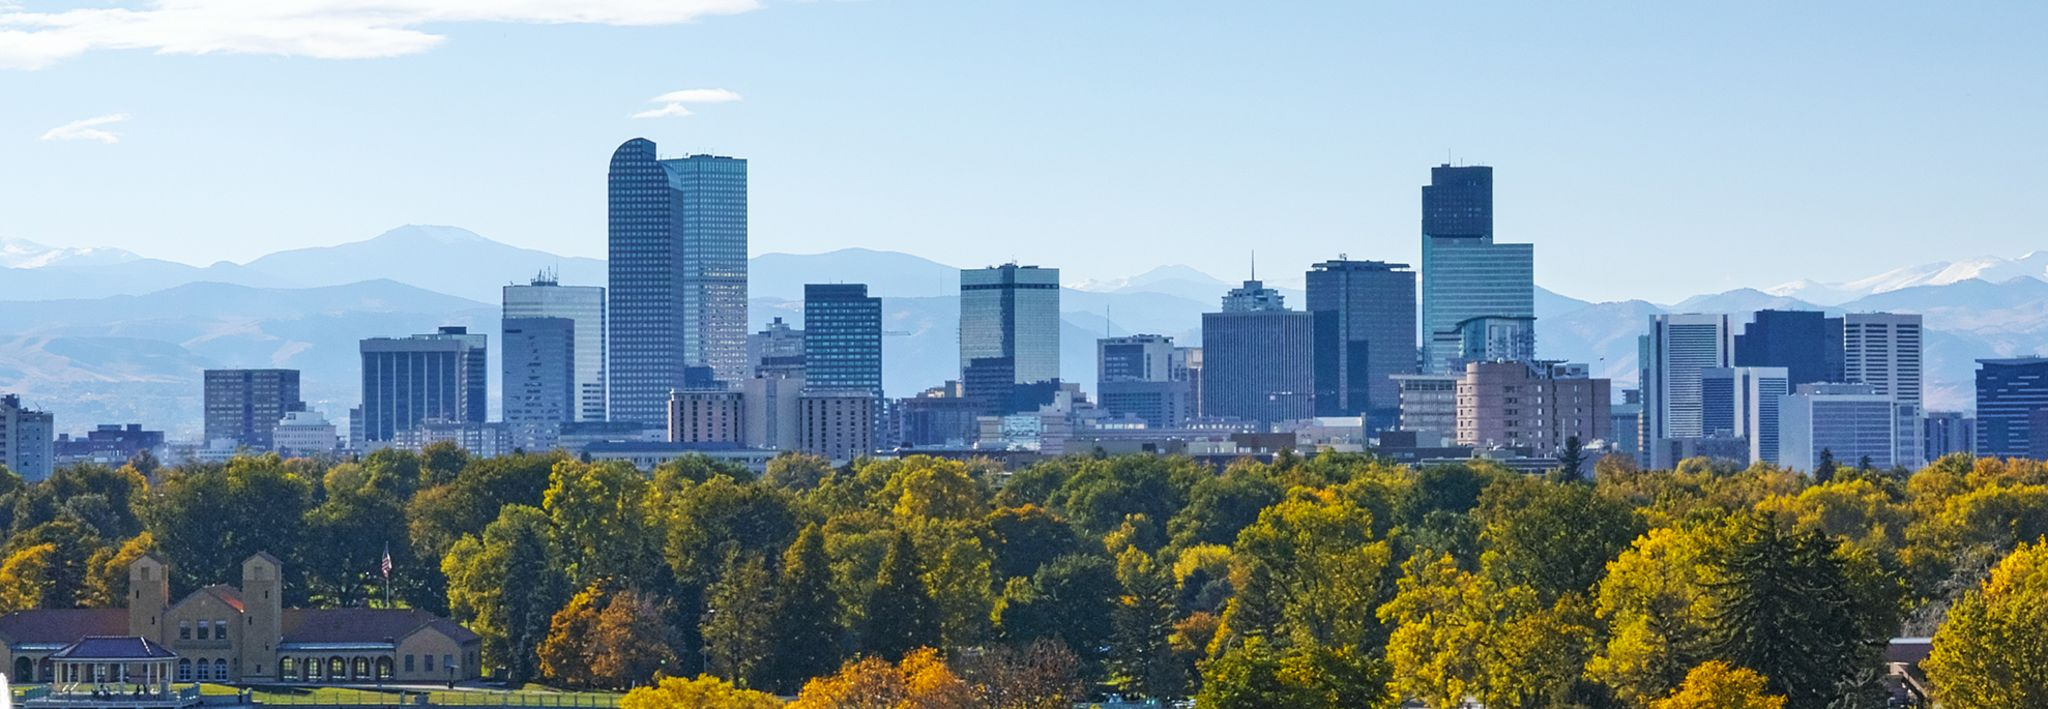 Denver skyline with the trees and mountains.